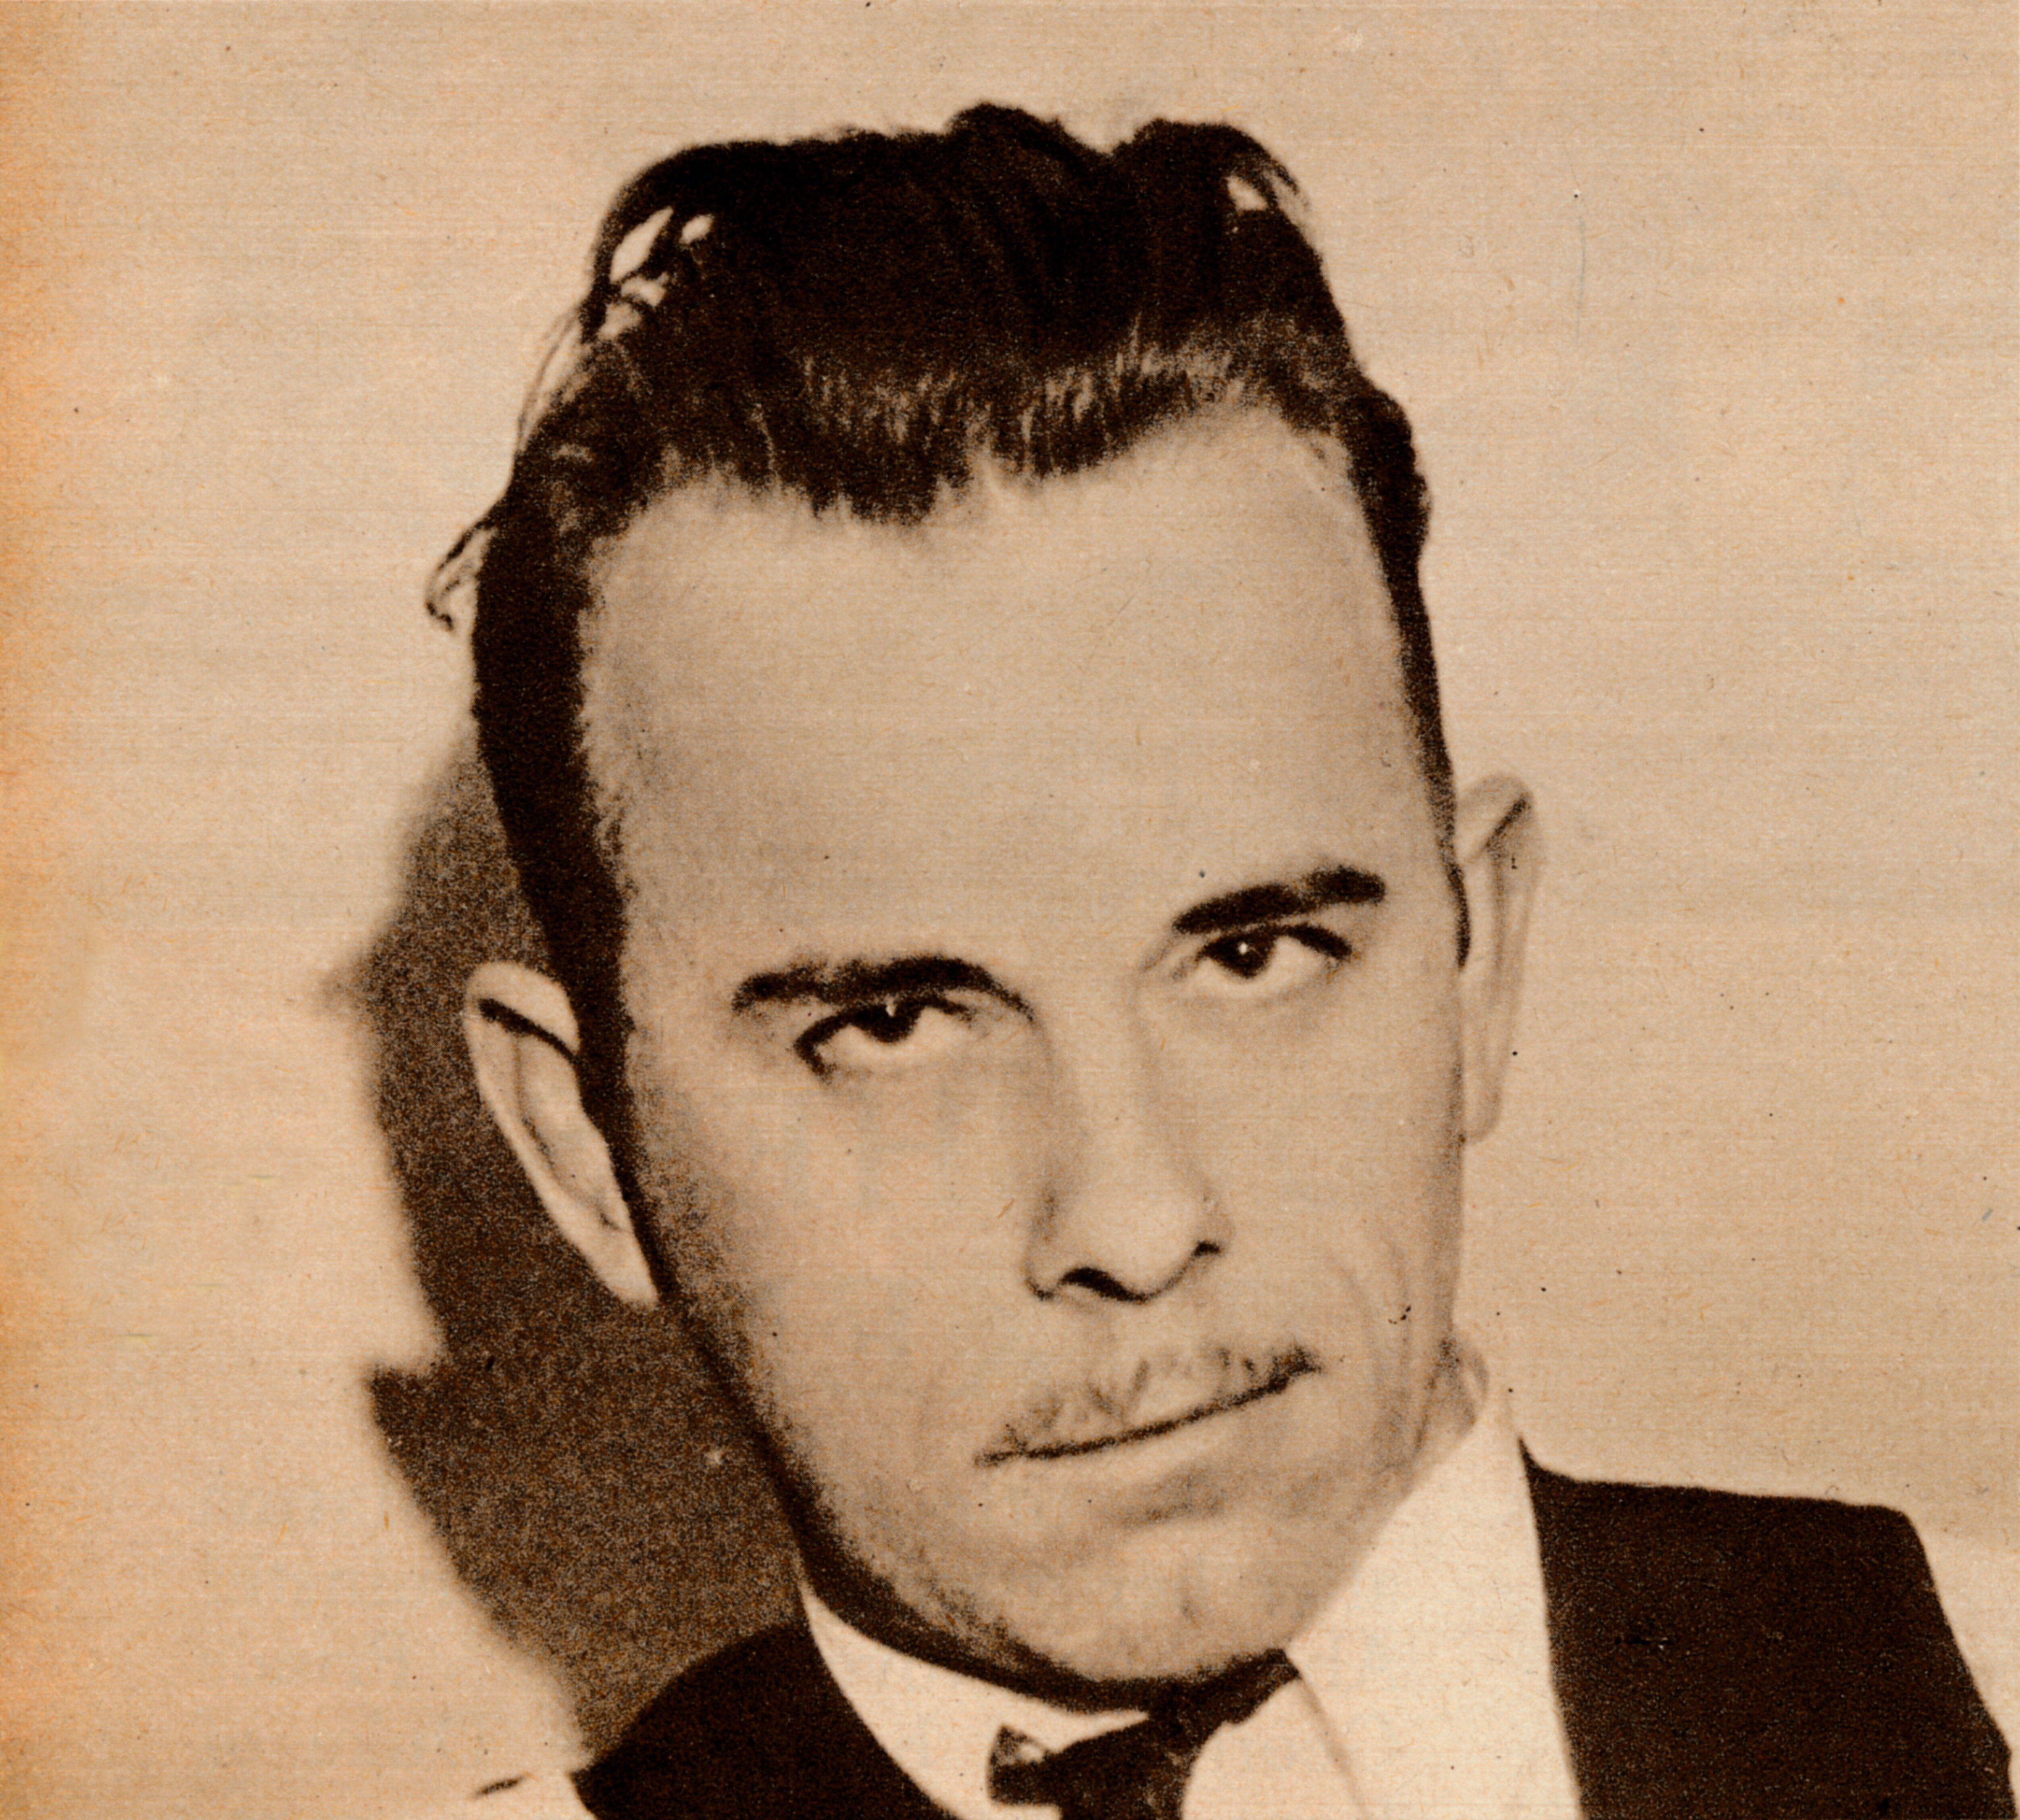 John Dillinger was one of America's most notorious criminals. The FBI says his gang killed 10 people as they pulle